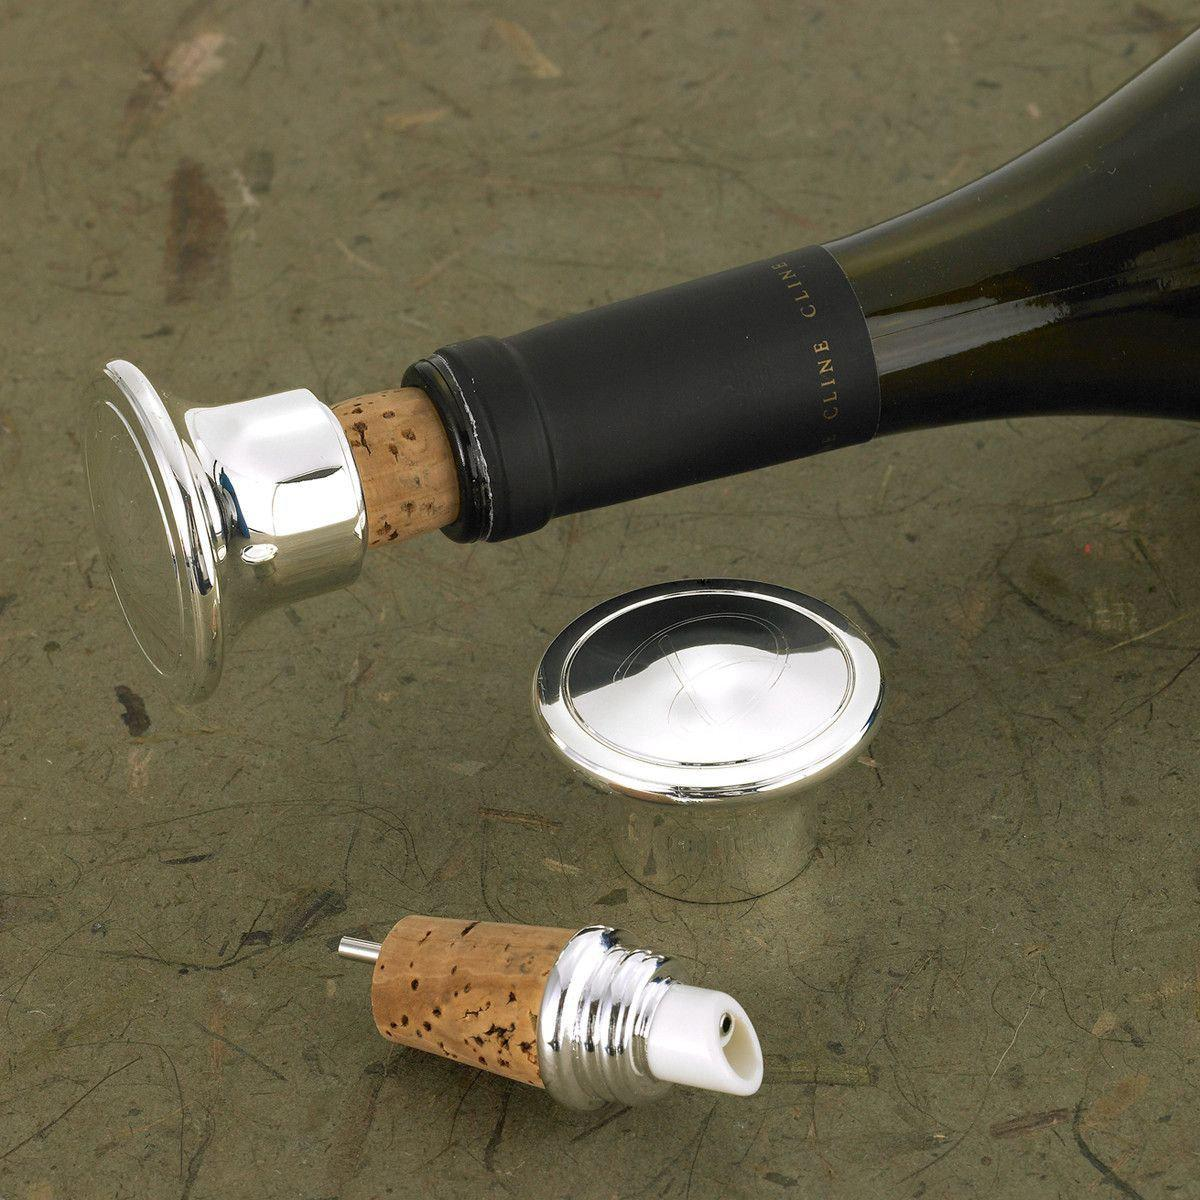 Personalized-Wine-Bottle-Stopper-Wine-Pourer-Silver-Plated